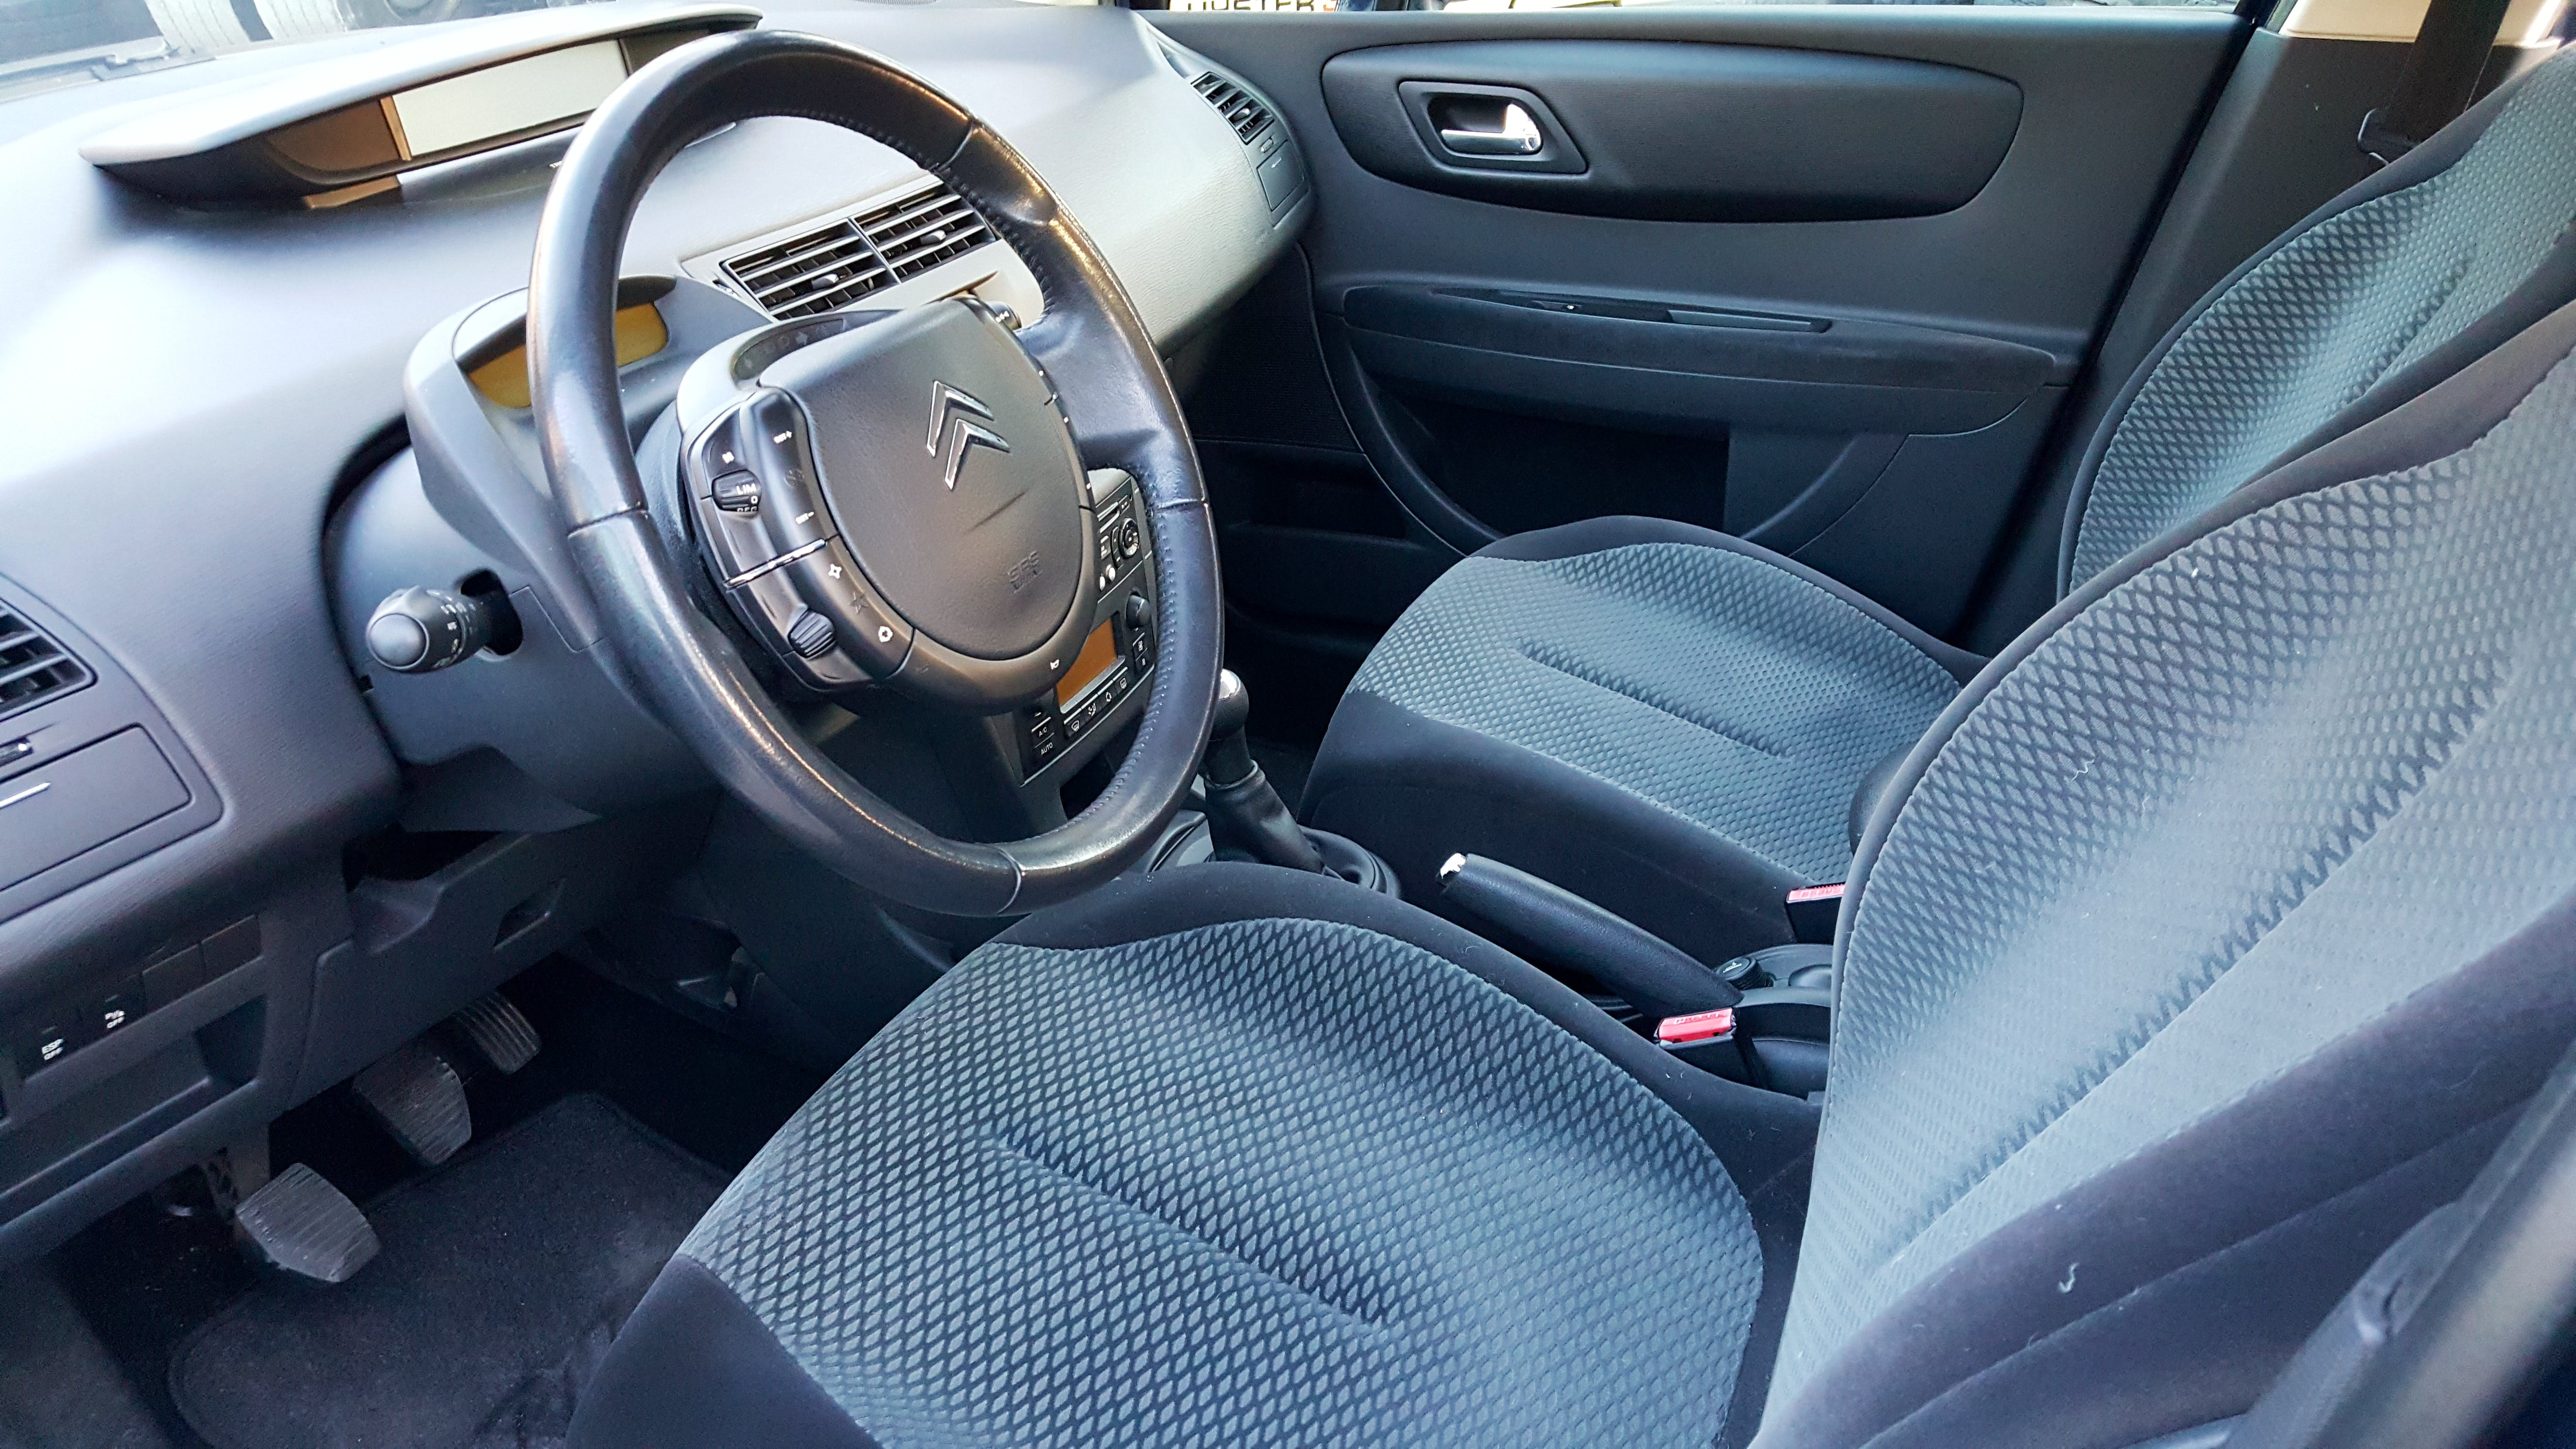 Citroen C4 1.6 HDI mit CD-Player